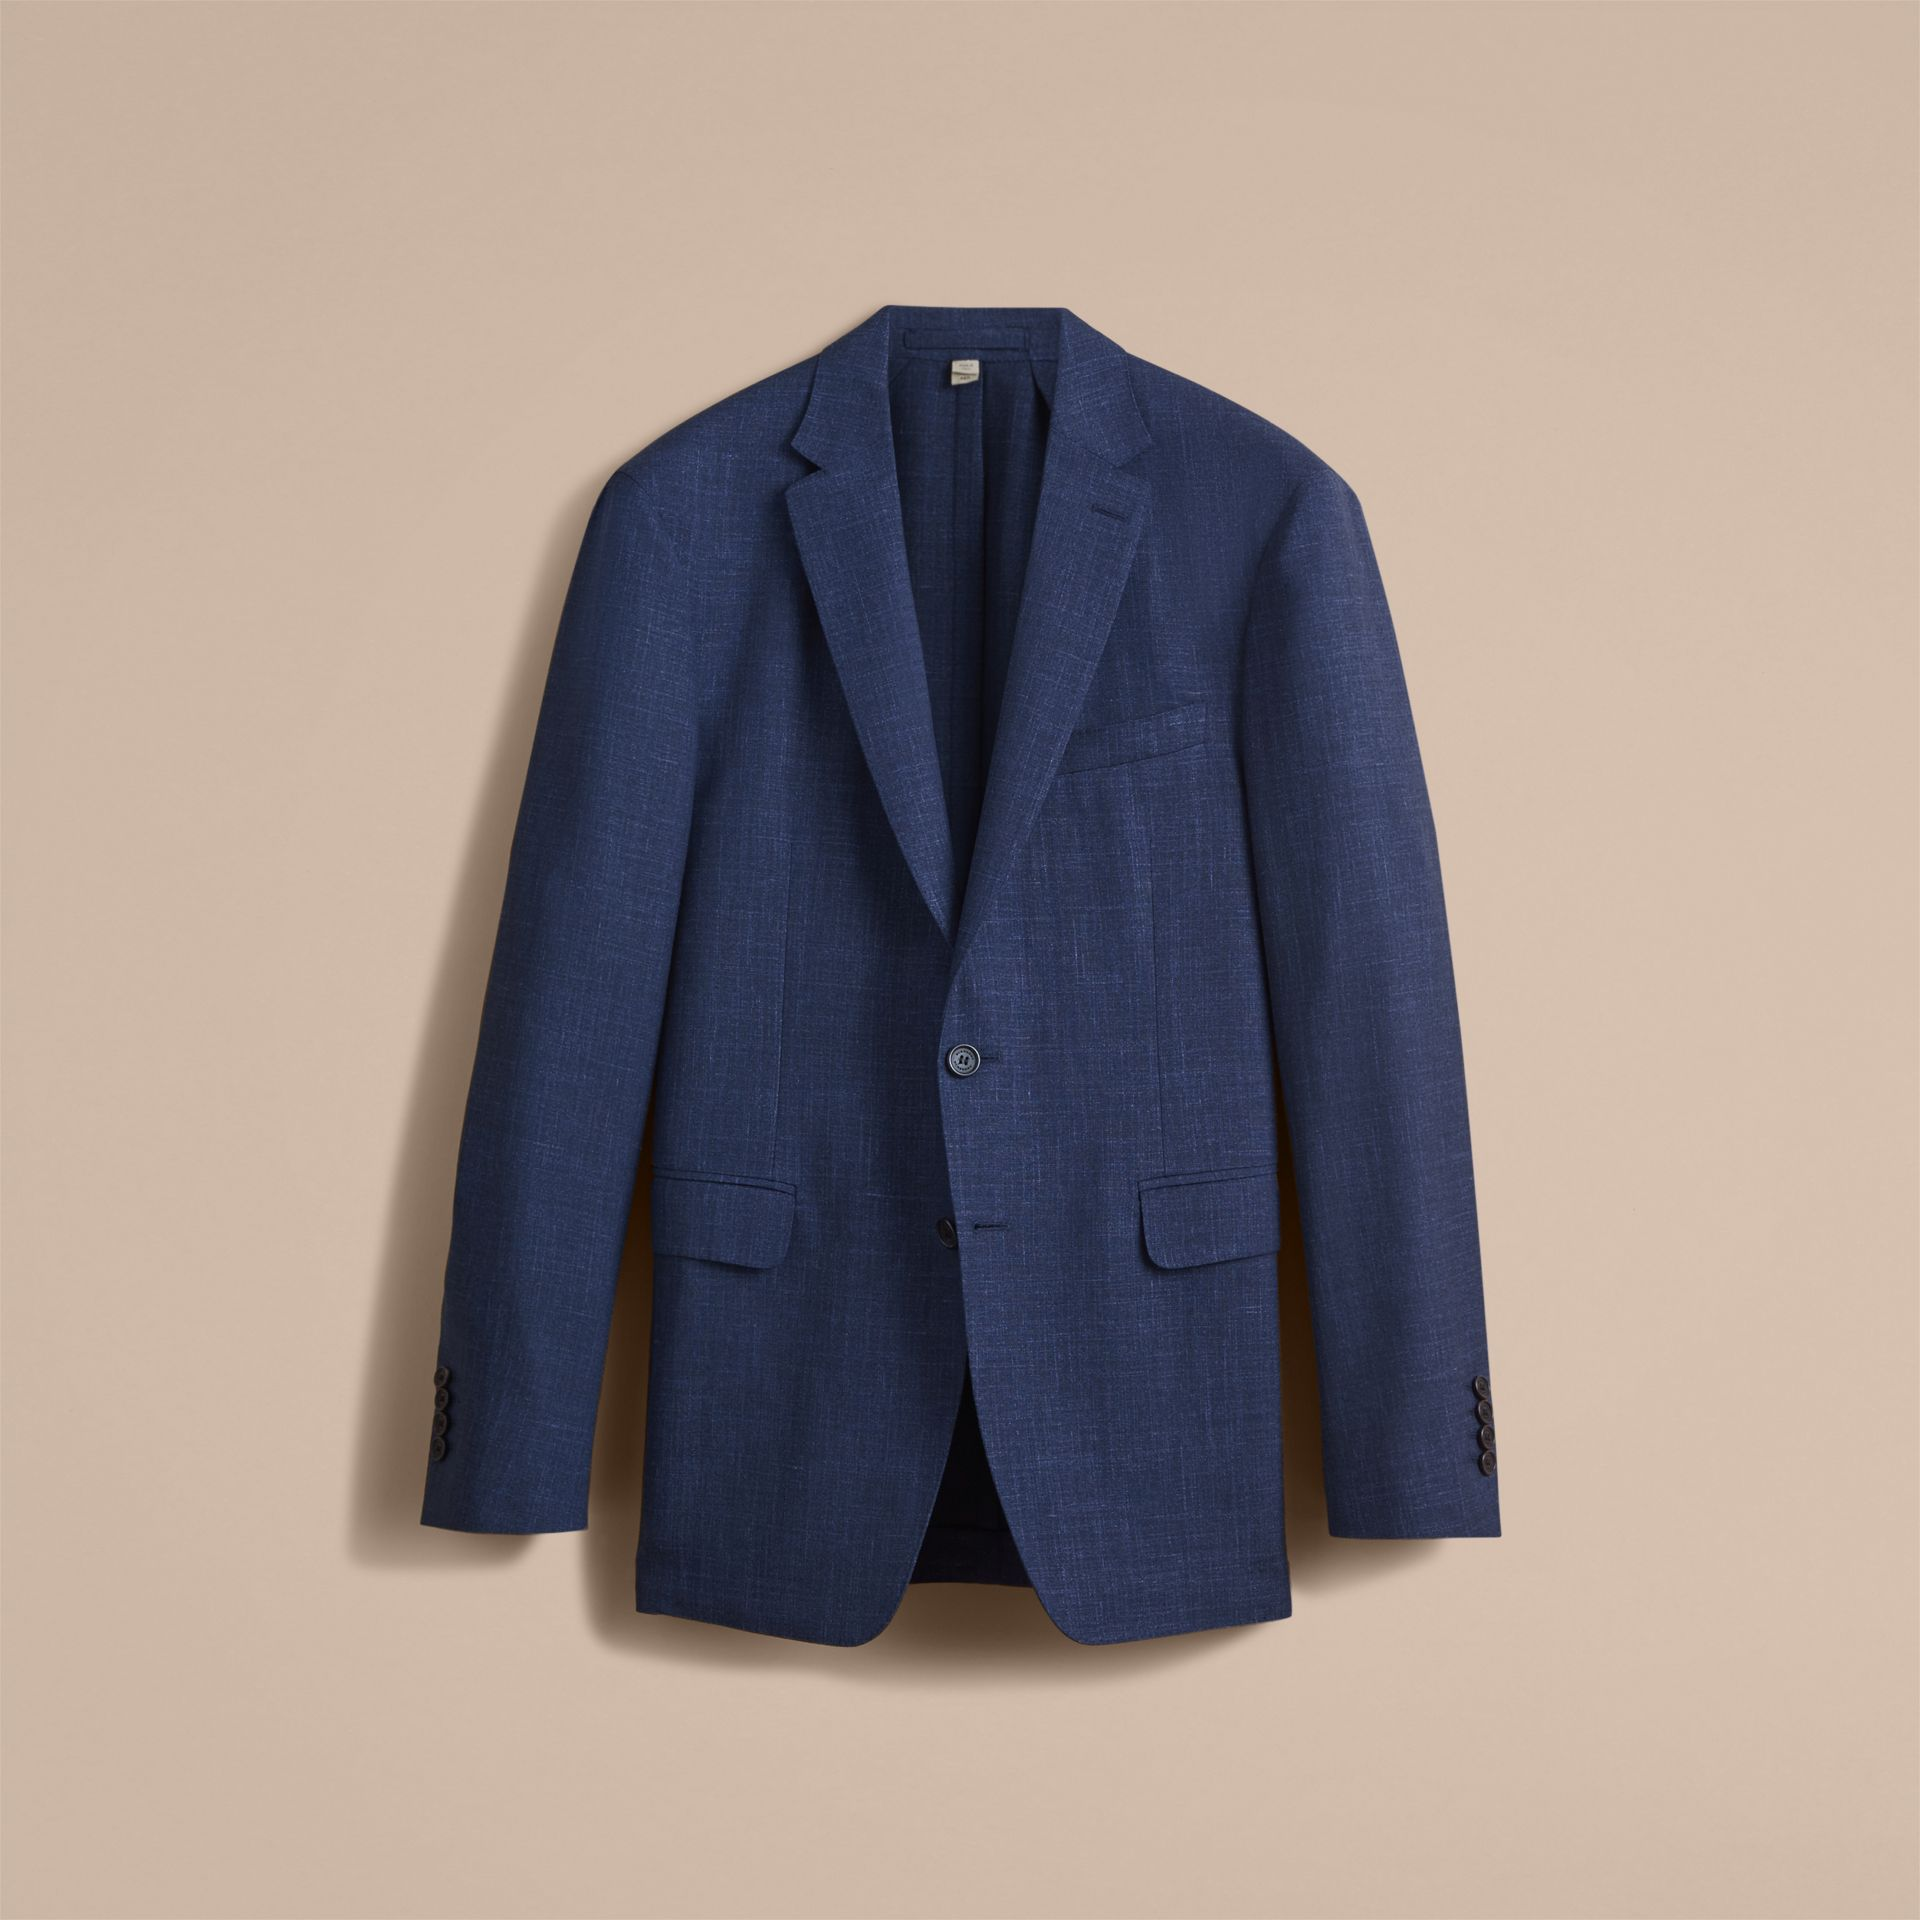 Modern Fit Wool Silk Linen Tailored Half-canvas Jacket - Men | Burberry - gallery image 5